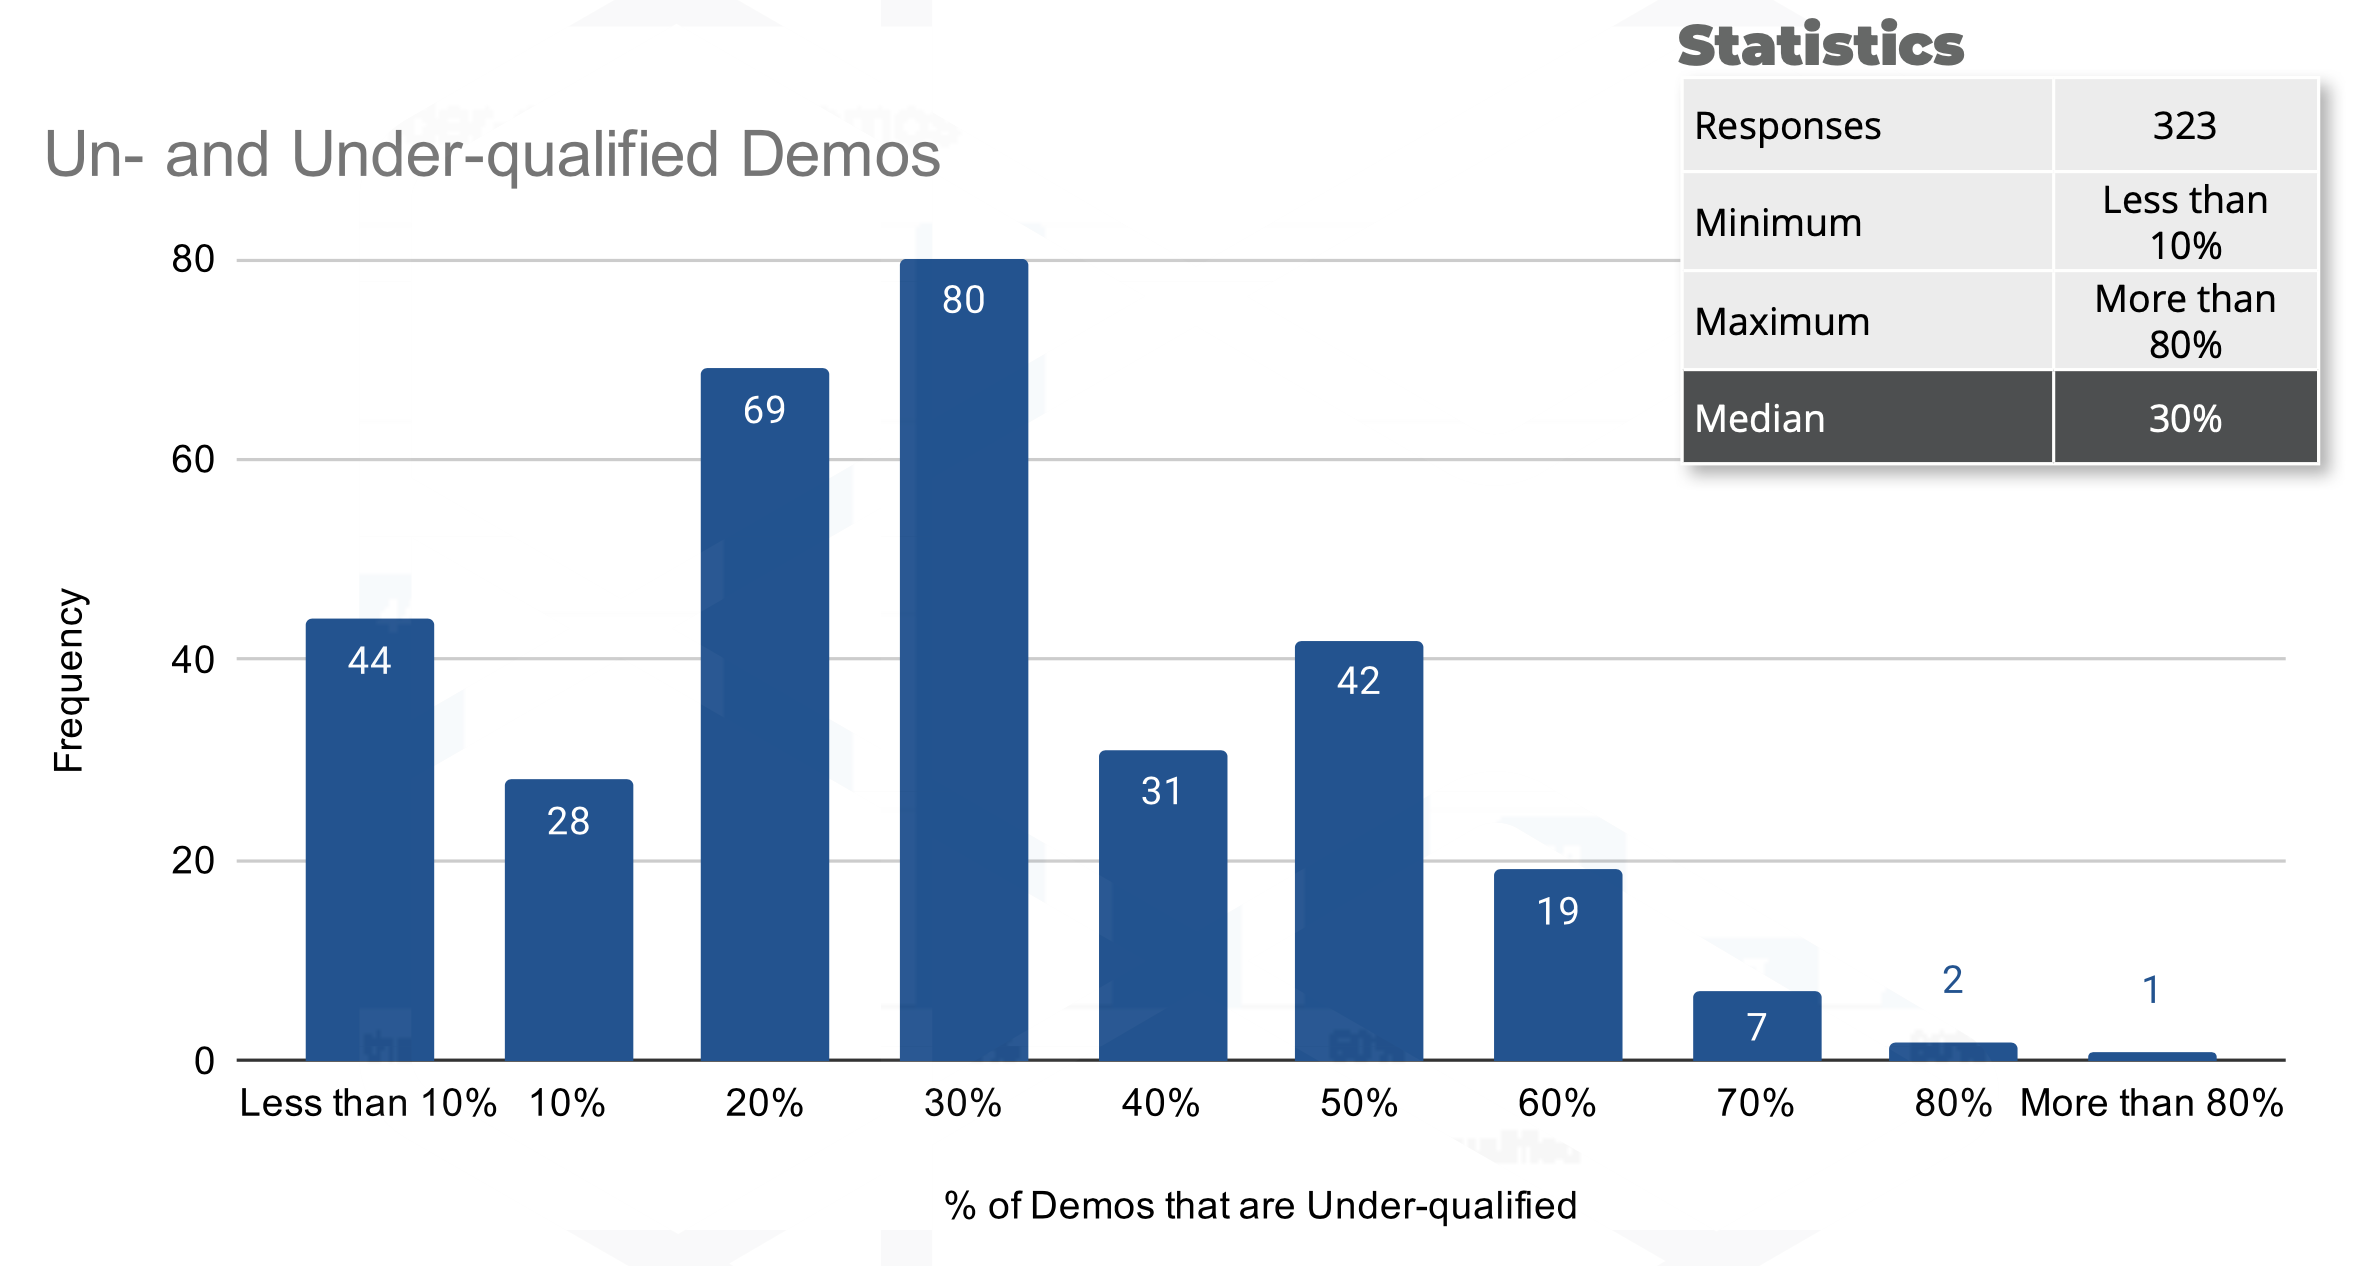 30% of demos or more are unqualified